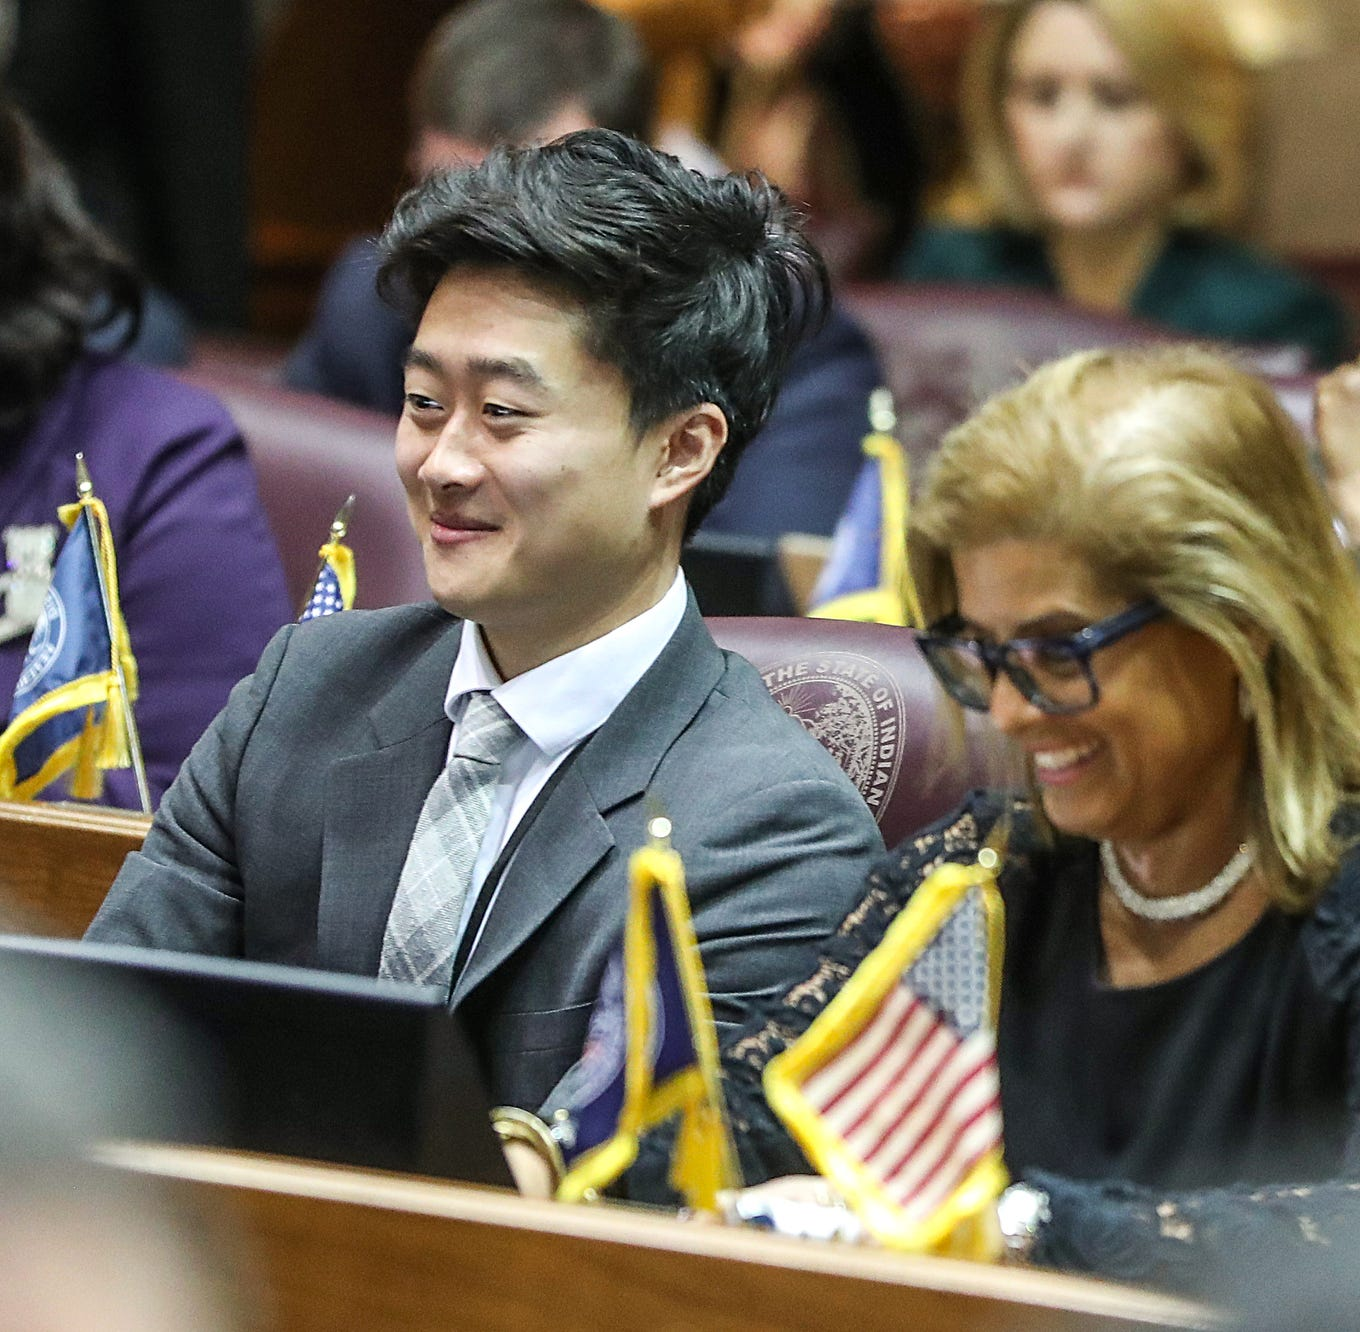 Lawmakers propose ban on conversion therapy for minors